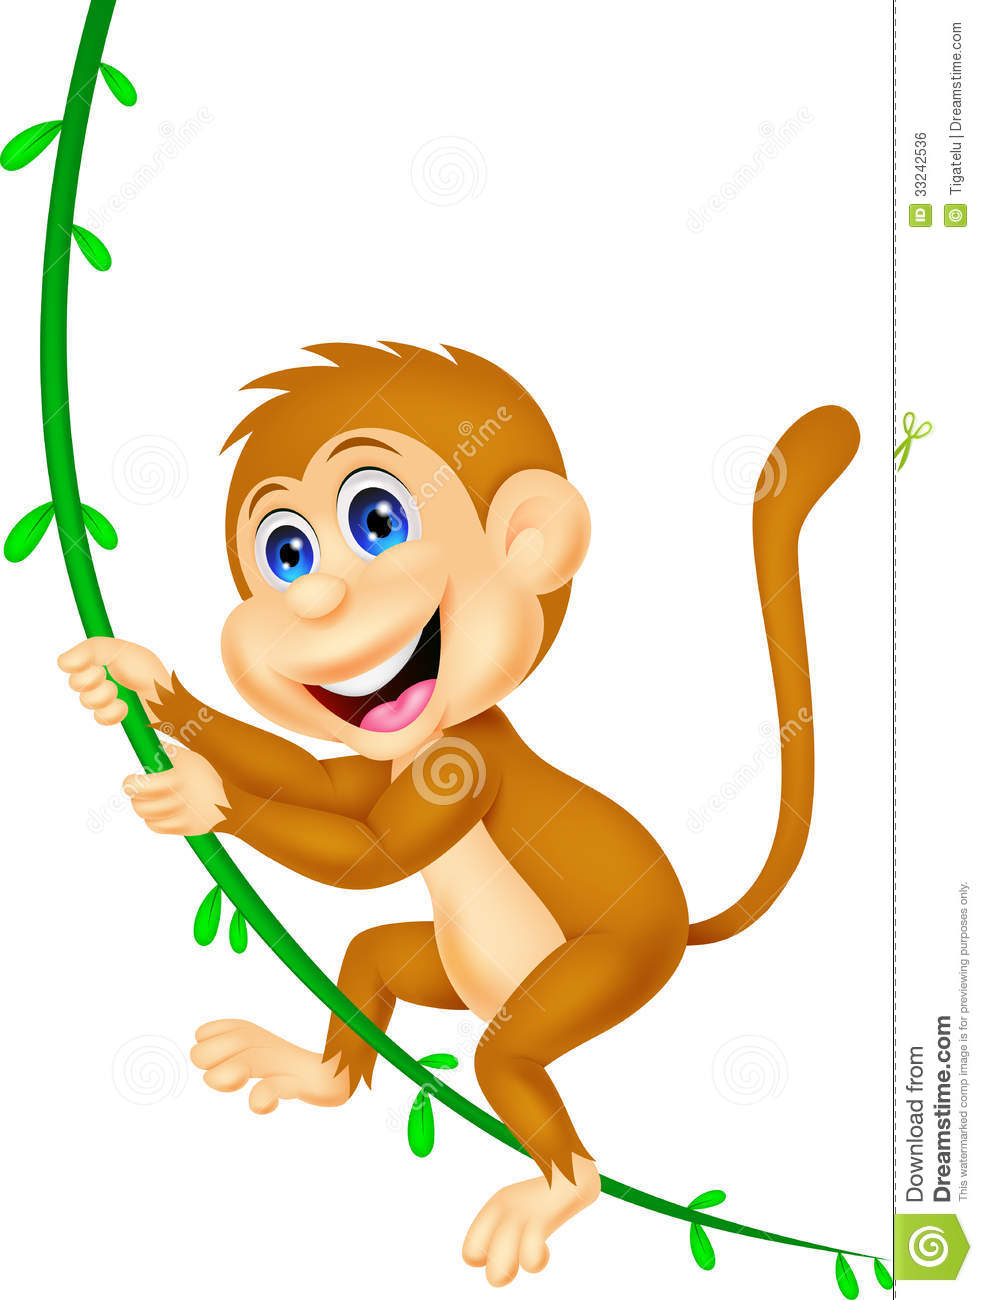 Hanging Monkey Clip Art.